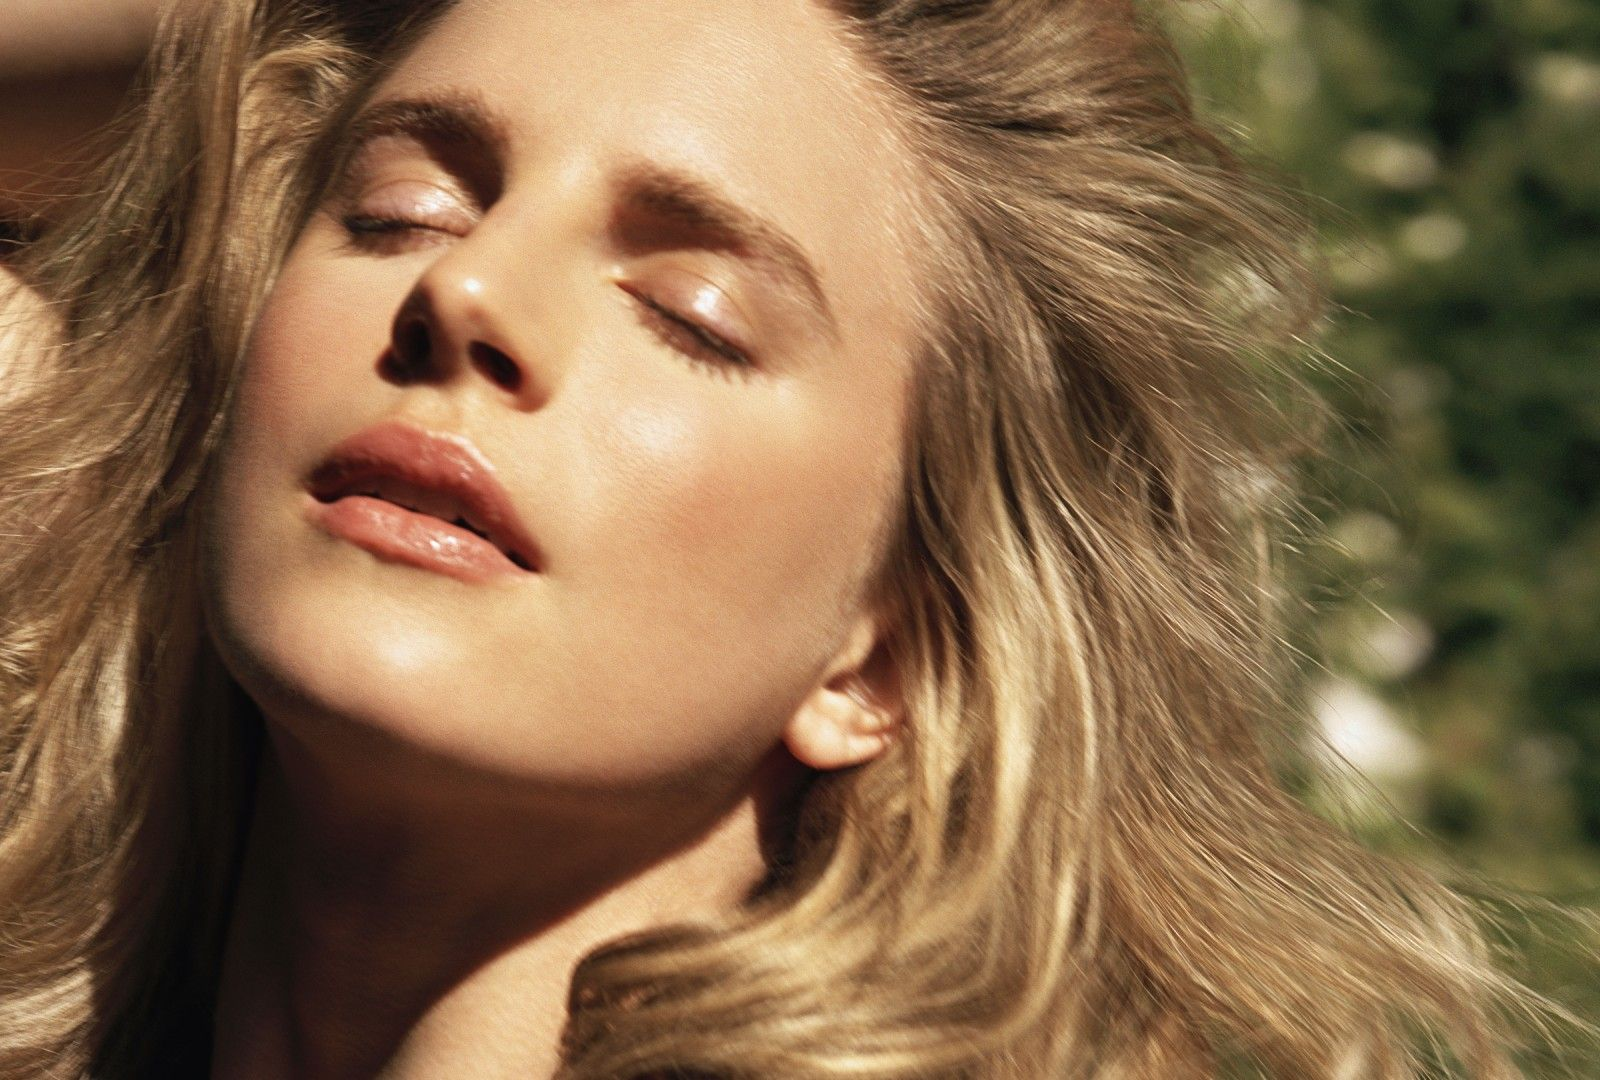 fashiontography the passion of brit marling by bruce